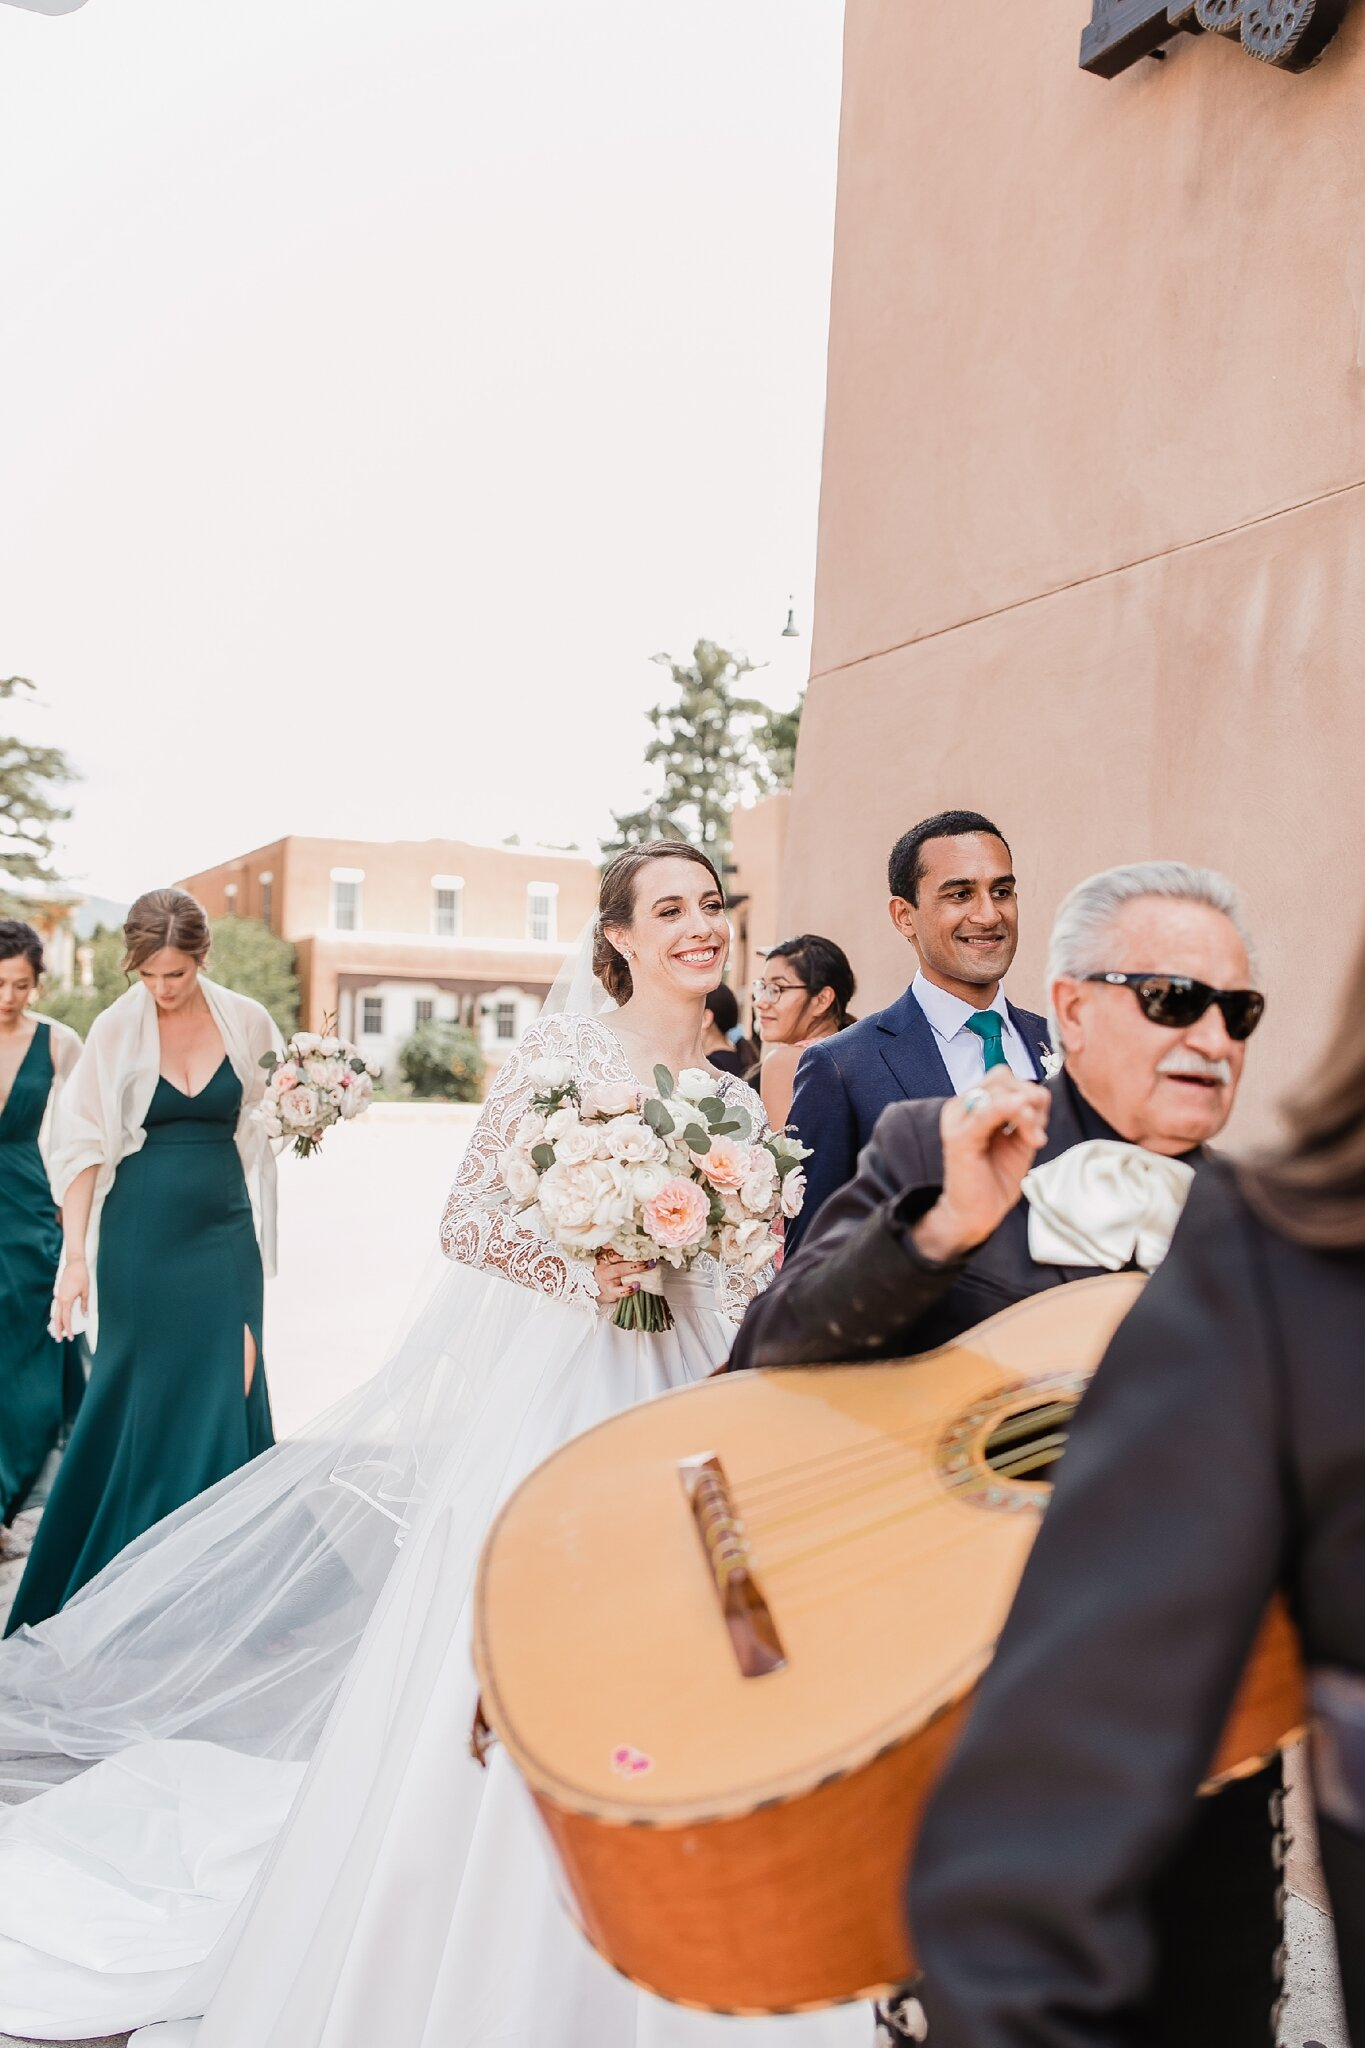 Alicia+lucia+photography+-+albuquerque+wedding+photographer+-+santa+fe+wedding+photography+-+new+mexico+wedding+photographer+-+new+mexico+wedding+-+hindu+wedding+-+catholic+wedding+-+multicultural+wedding+-+santa+fe+wedding_0041.jpg